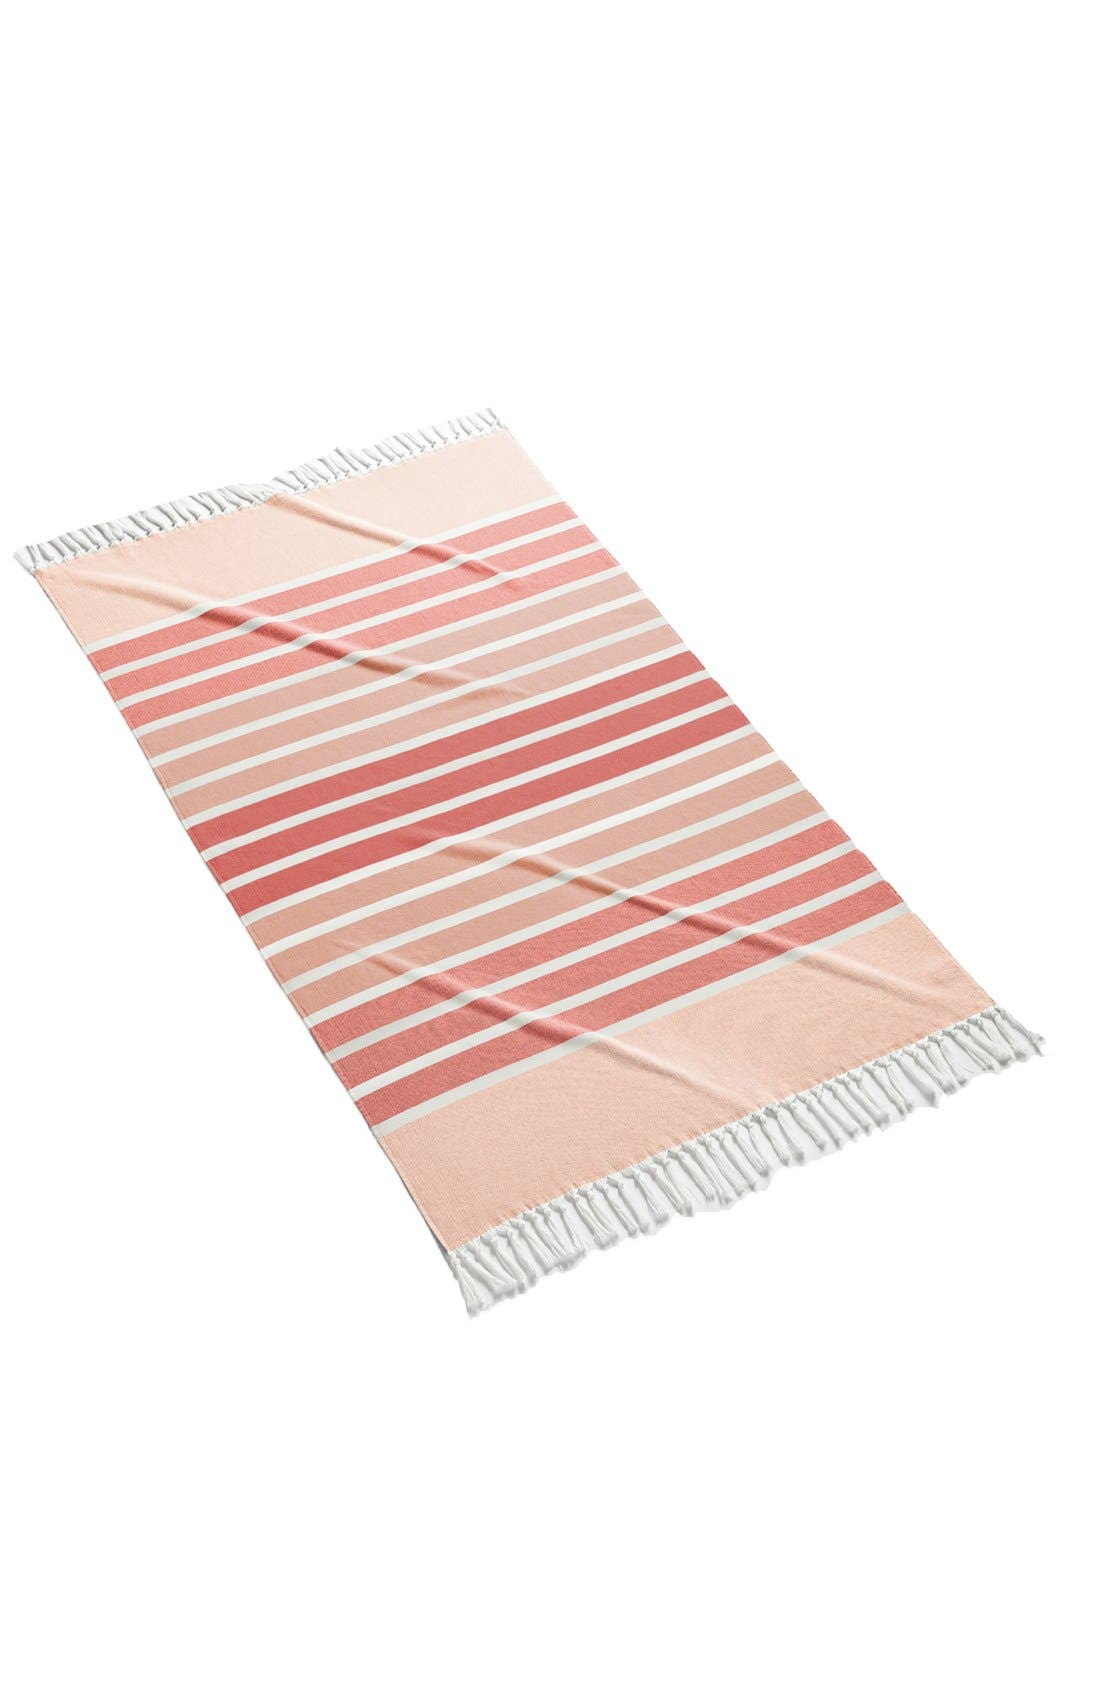 KASSATEX,                             'Bodrum' Cotton Beach Towel,                             Main thumbnail 1, color,                             950